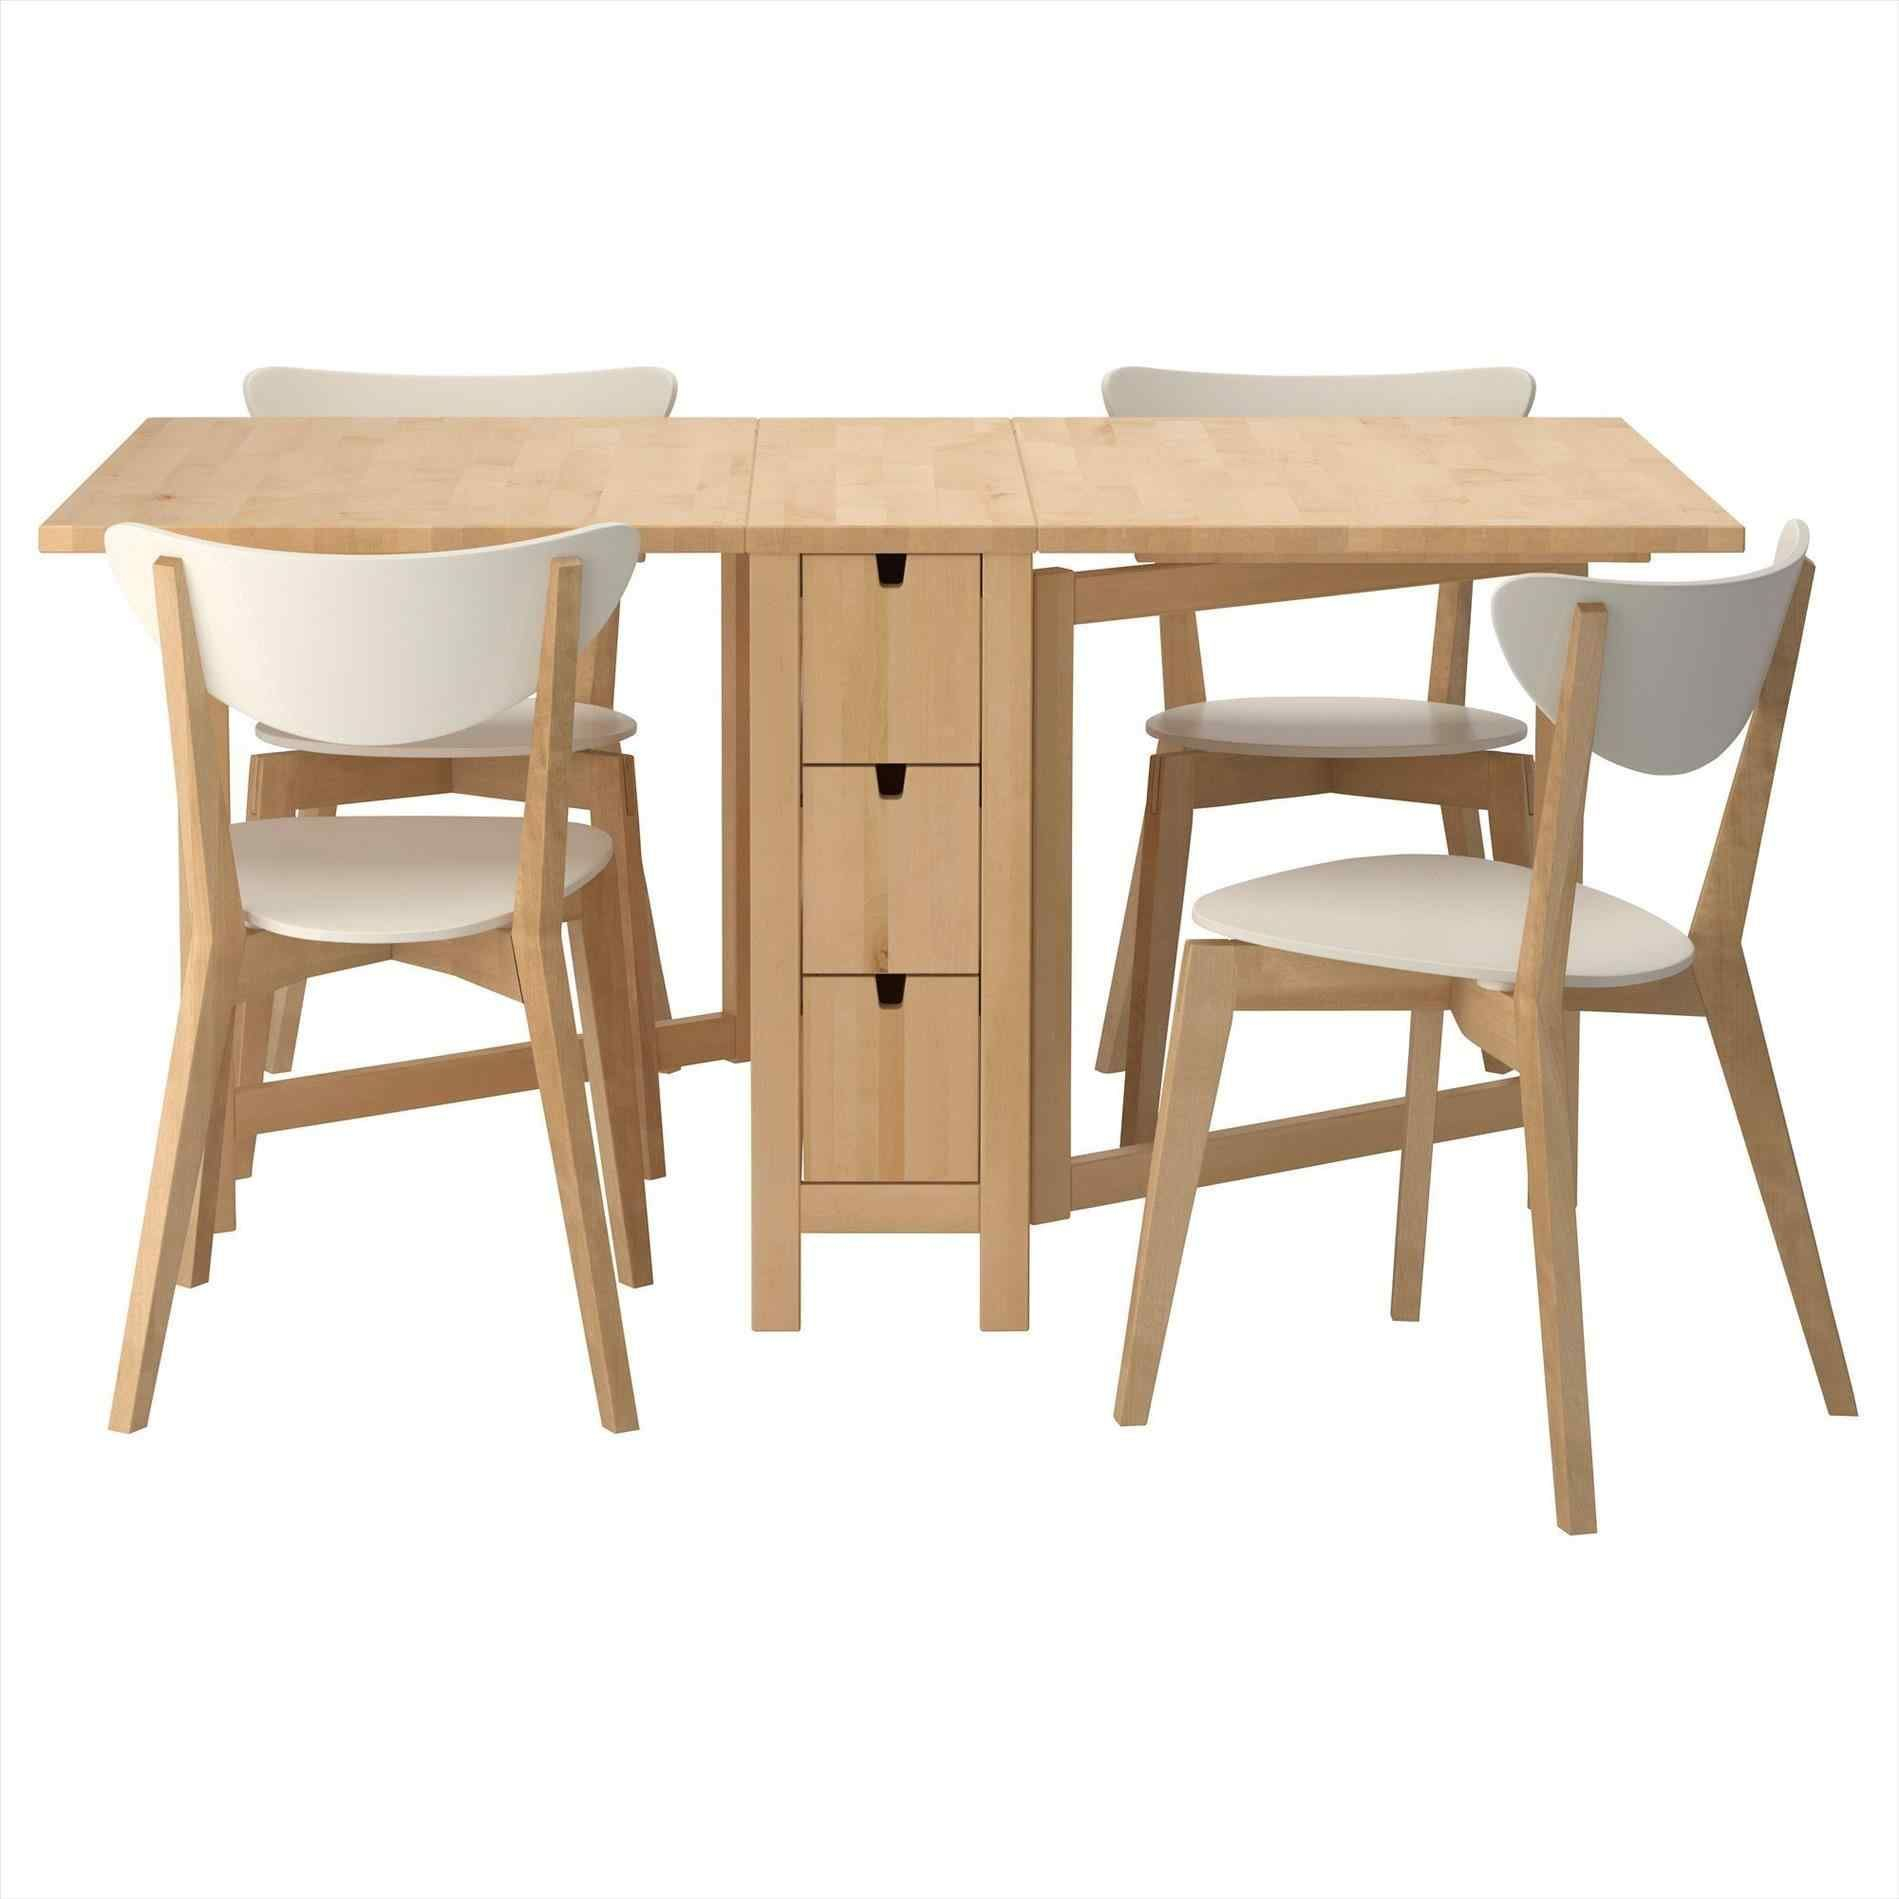 Best Comfortable Seating For Small Spaces Ideas | Table Ikea destiné Table Salle A Manger Pliante Ikea